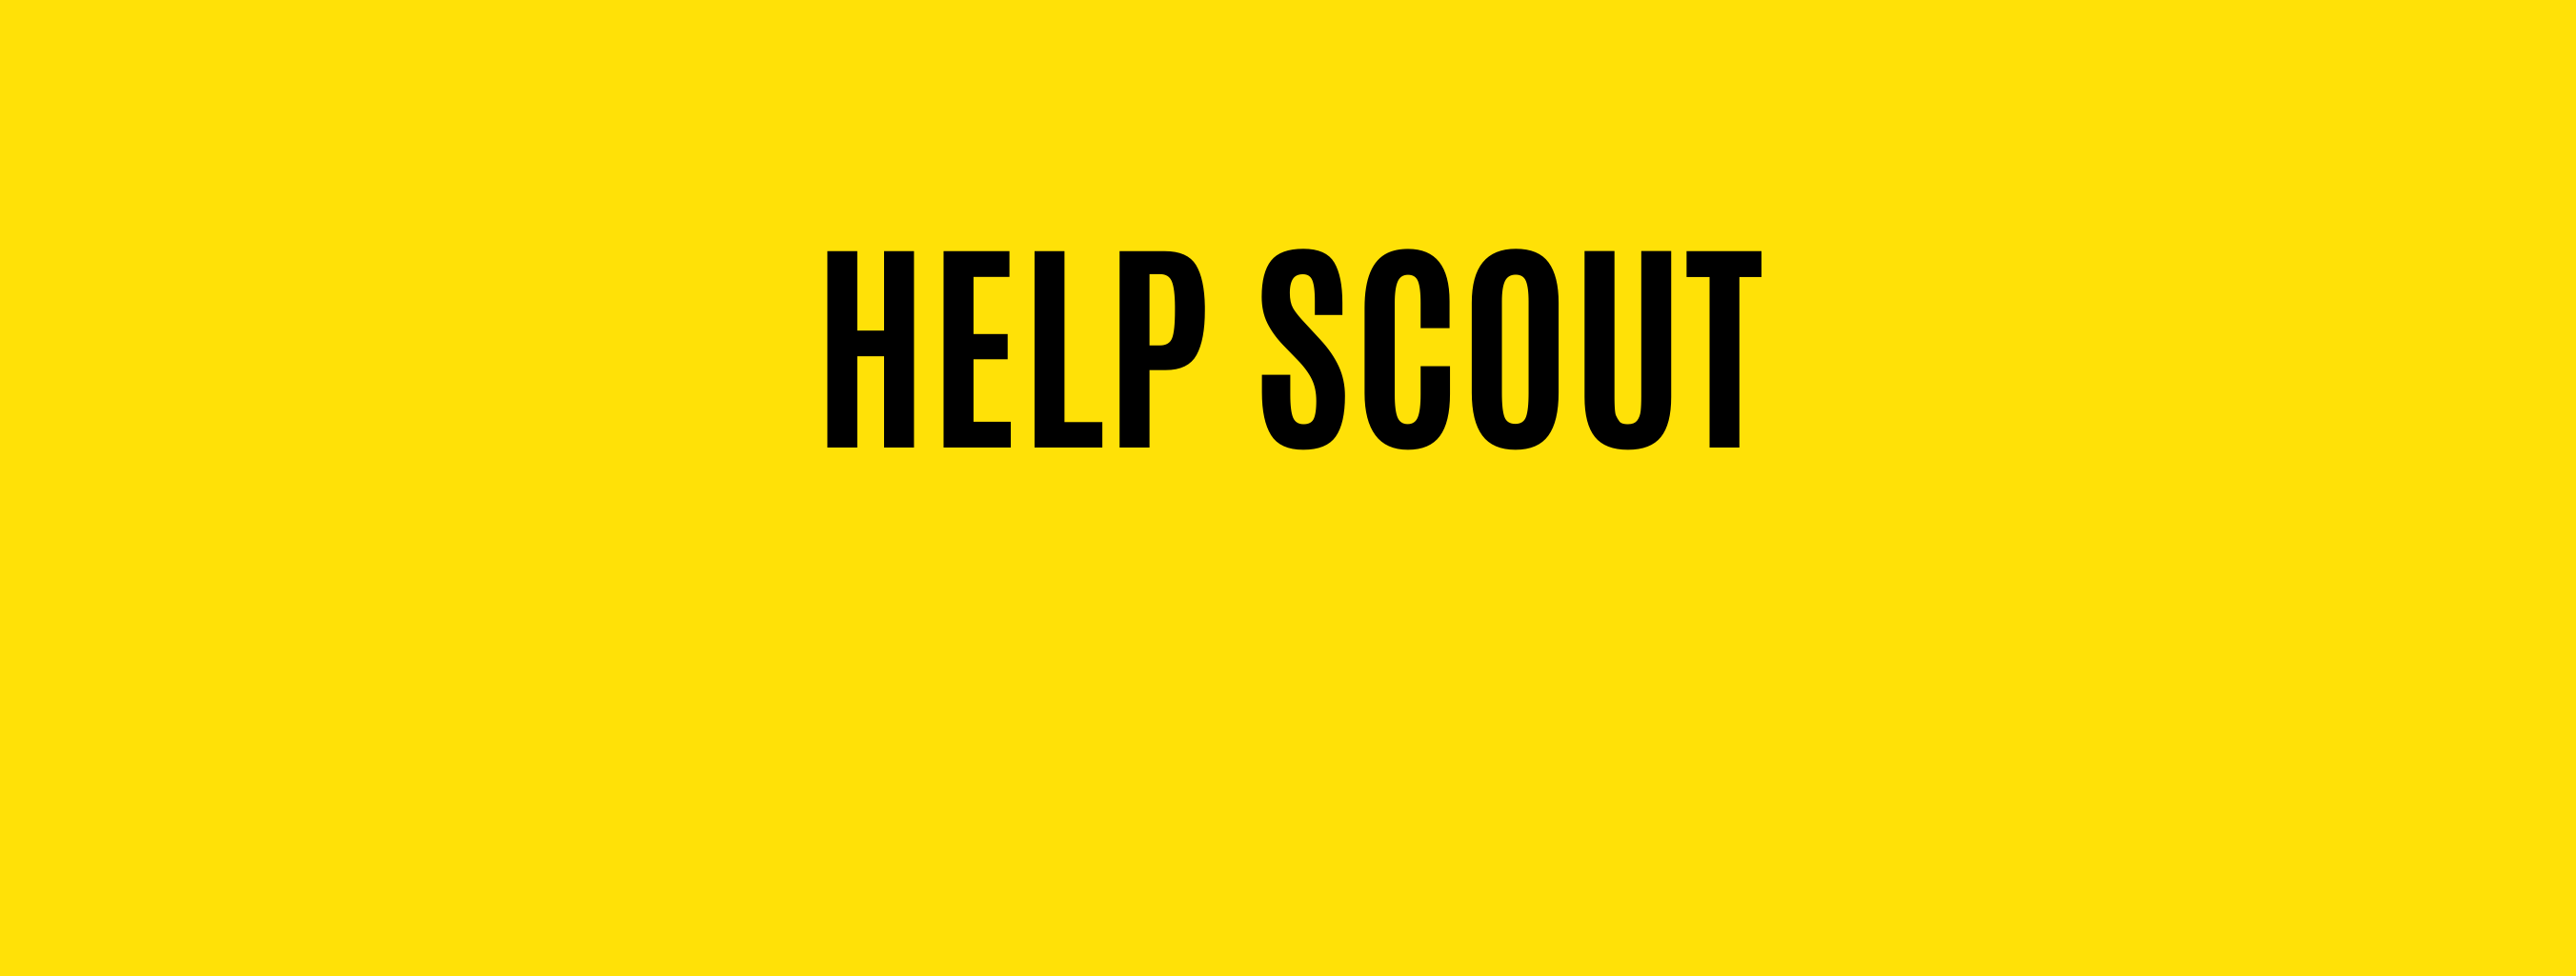 help-scout-customer-support-specialist-hire-usource